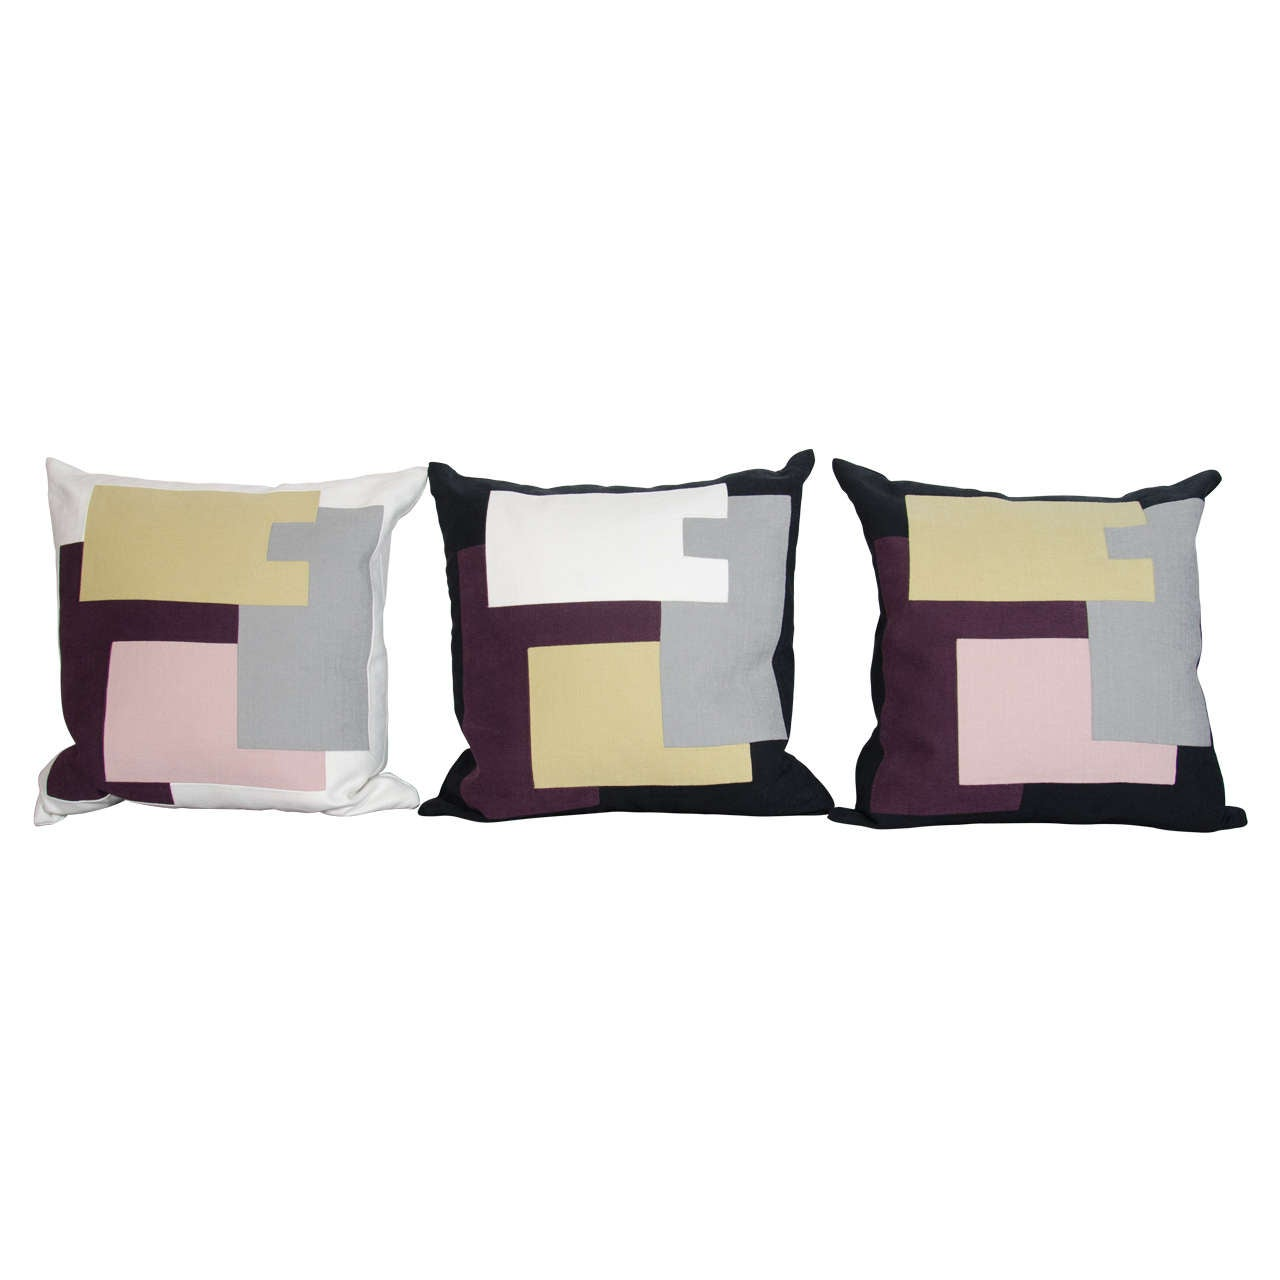 Couture throw pillows by Arguello Casa with abstract designs, inspired by the architectural skyline of New York City. Individually handcrafted in New York , culminating in day long stitching process, and using the finest of Italian linens. In hues